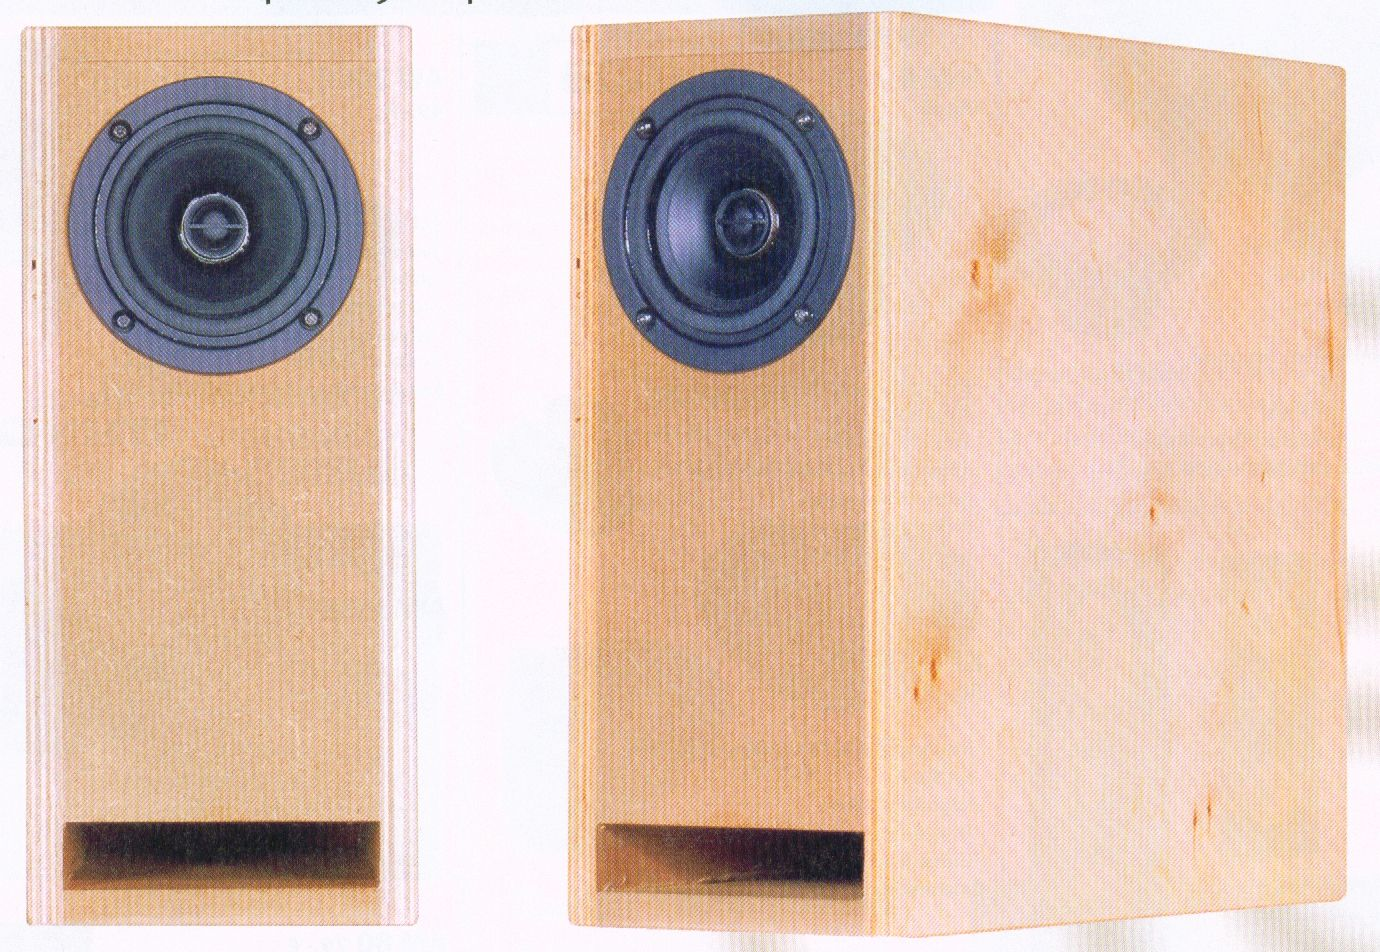 hobby hifi spiralino tl cc96 bausatz speakers. Black Bedroom Furniture Sets. Home Design Ideas